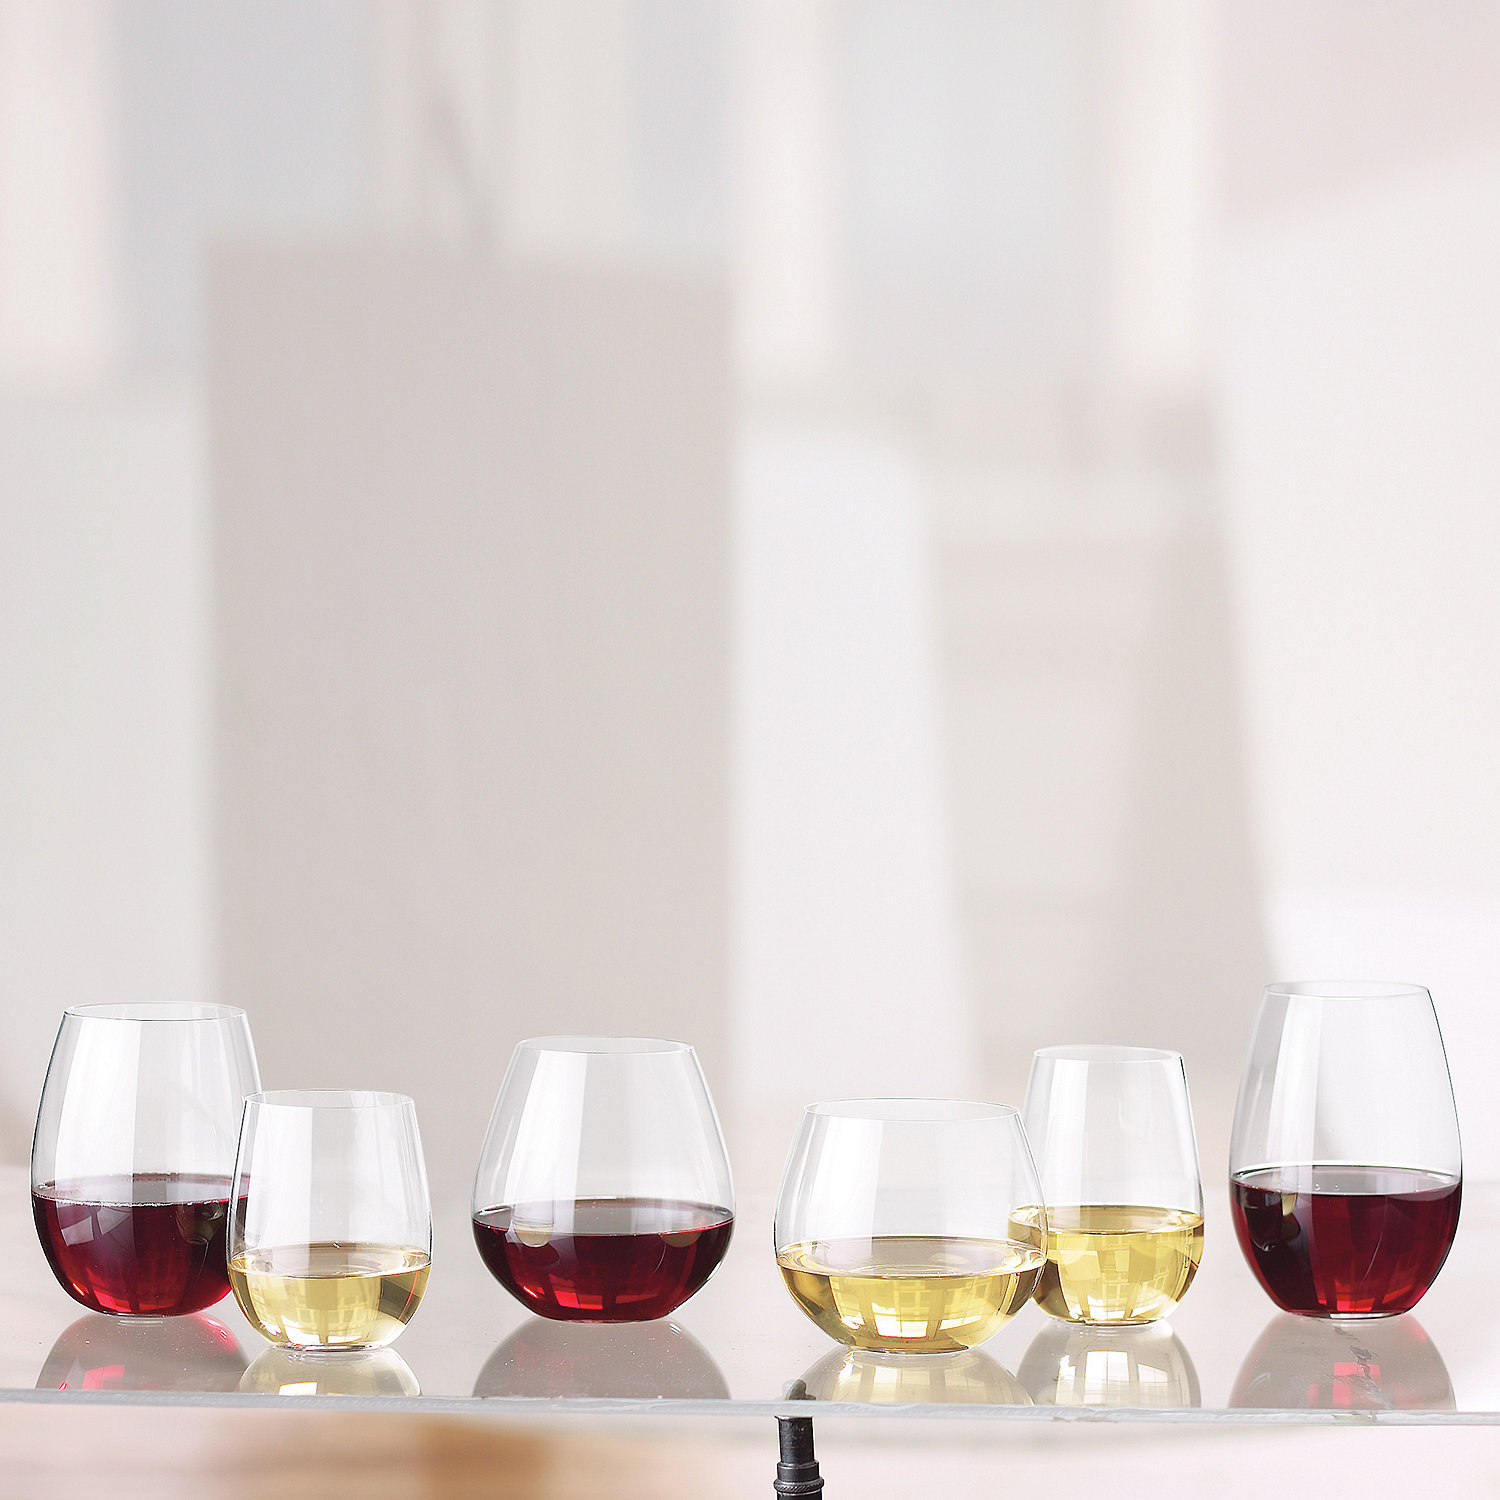 investigation in acoustics of wine glasses 263311 wine glass breaks with voice resonance place the sound box of a recording machine or acoustics level on a table  opera singers and glasses.